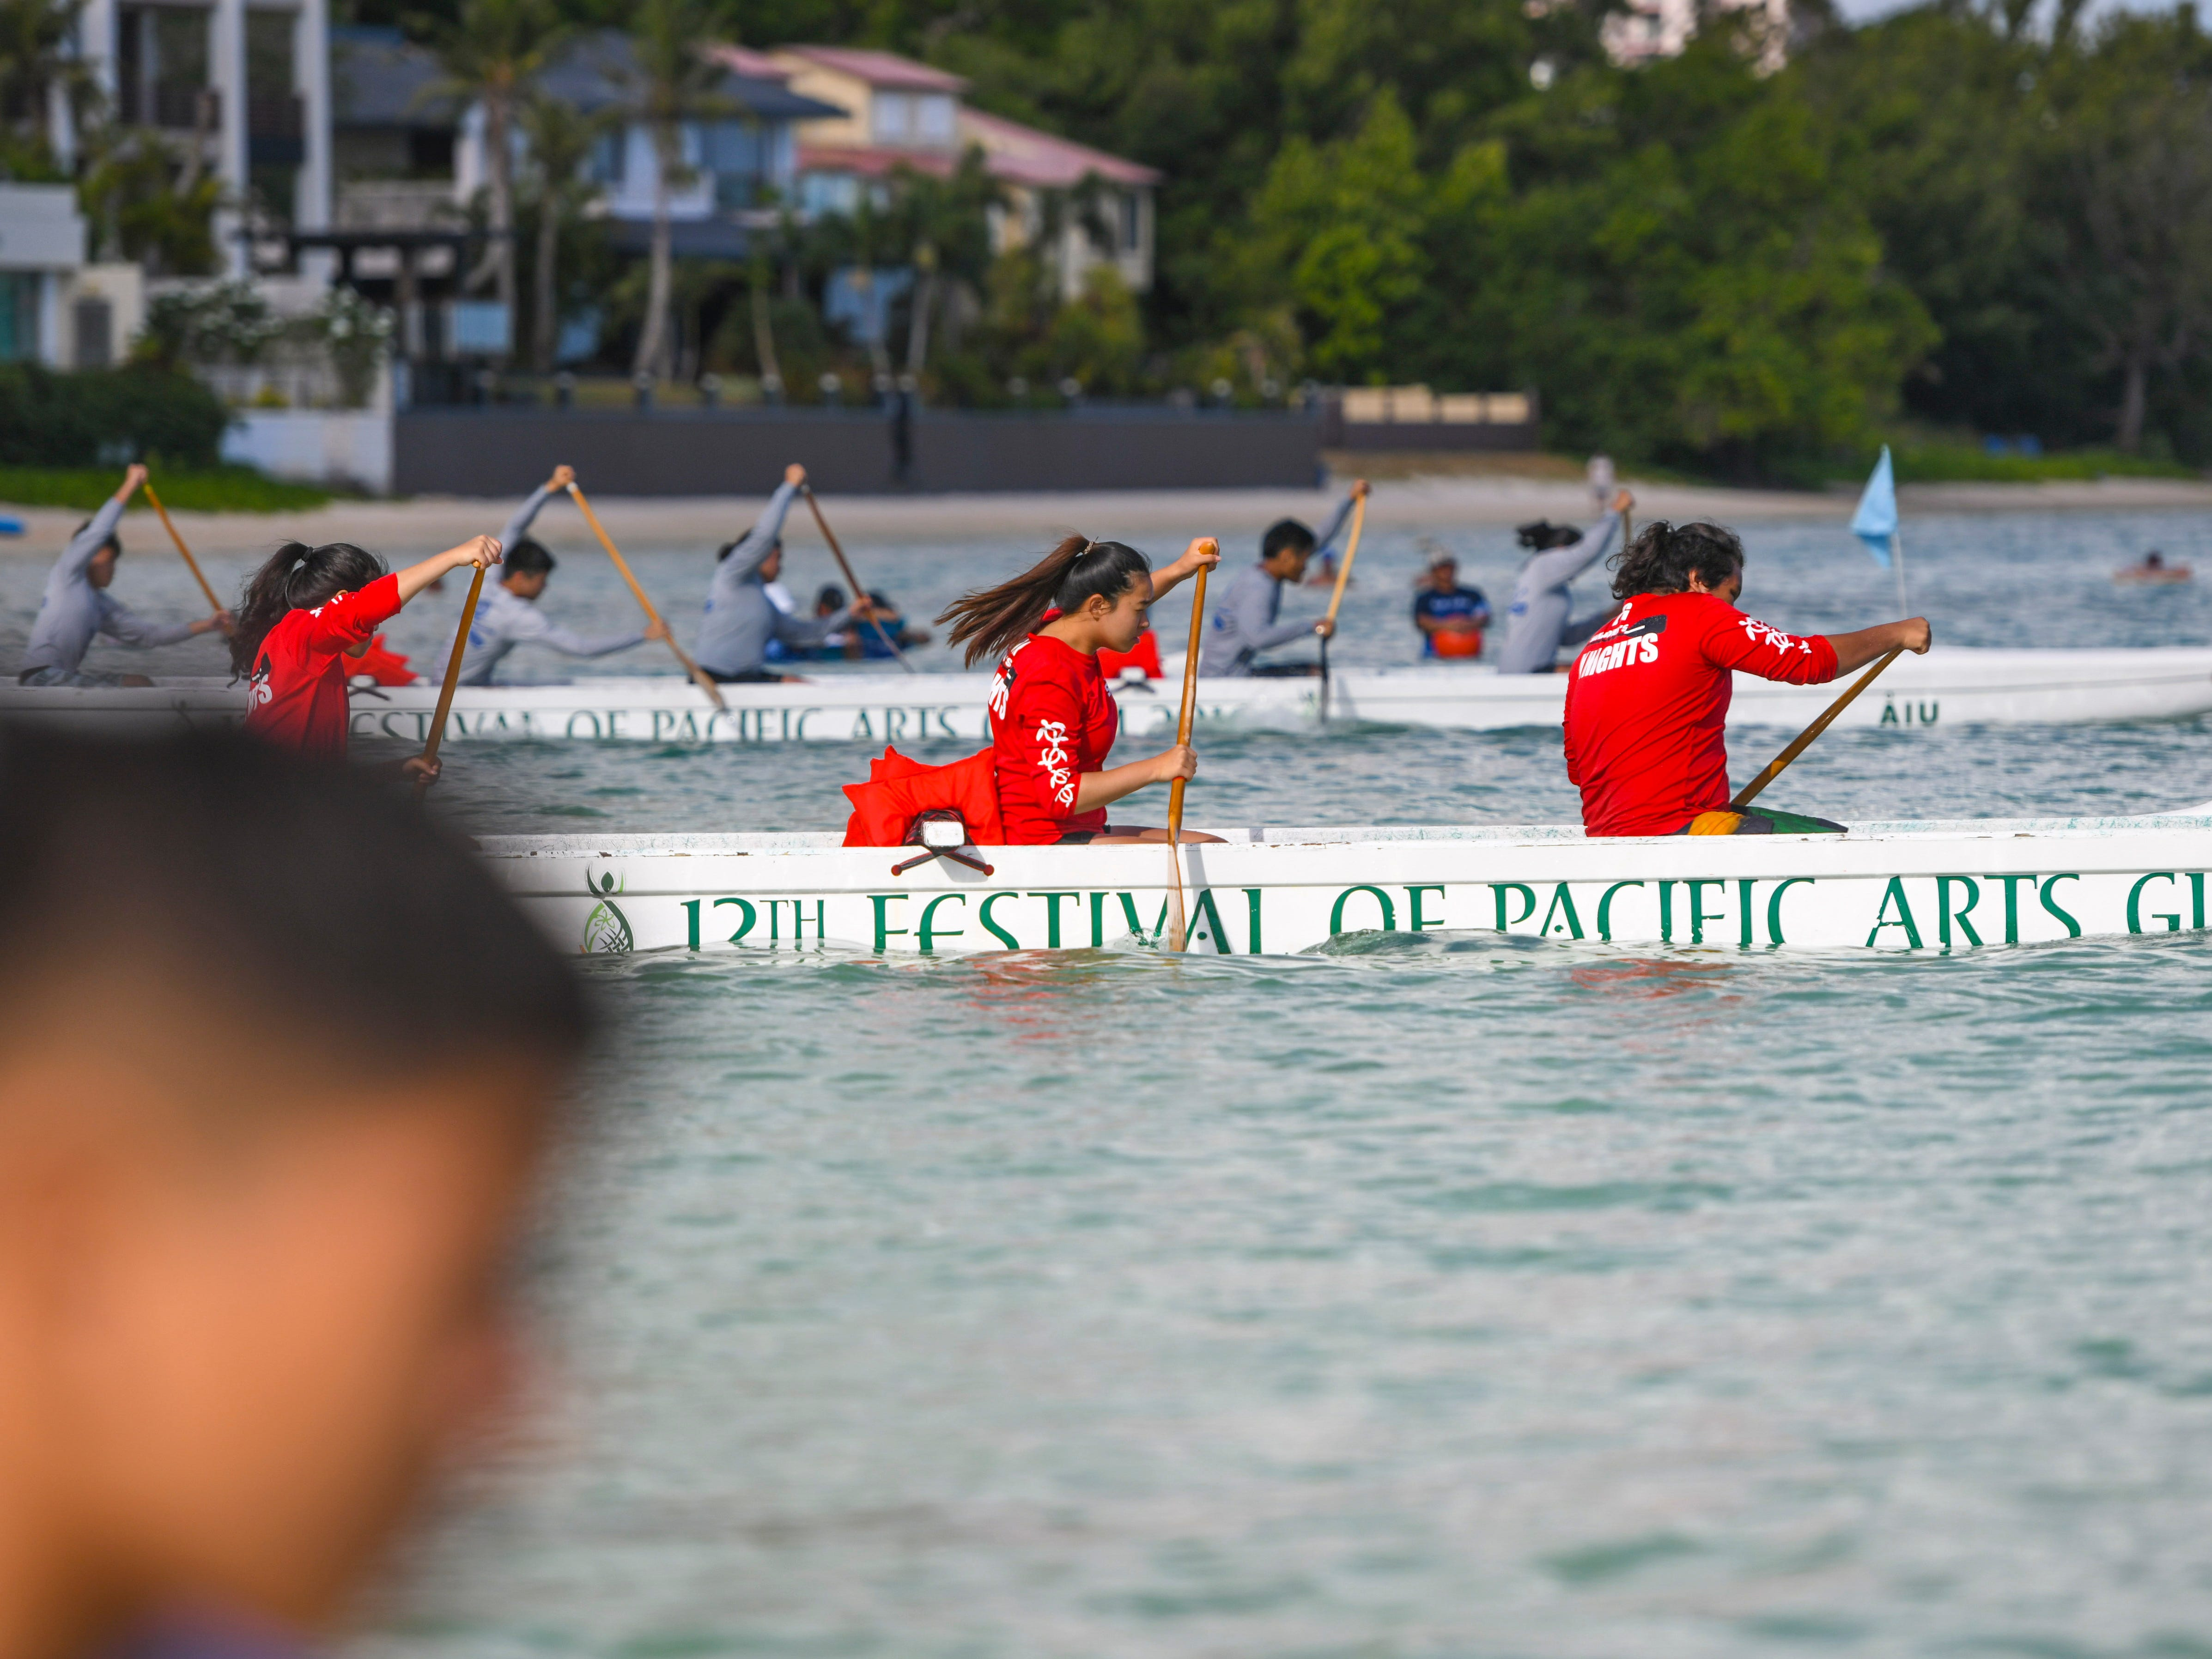 A St. John's Knight paddling team pushes away from the starting line as they compete in an IIAAG Paddling competition preliminary race against other teams in Tumon on Saturday, May 11, 2019.